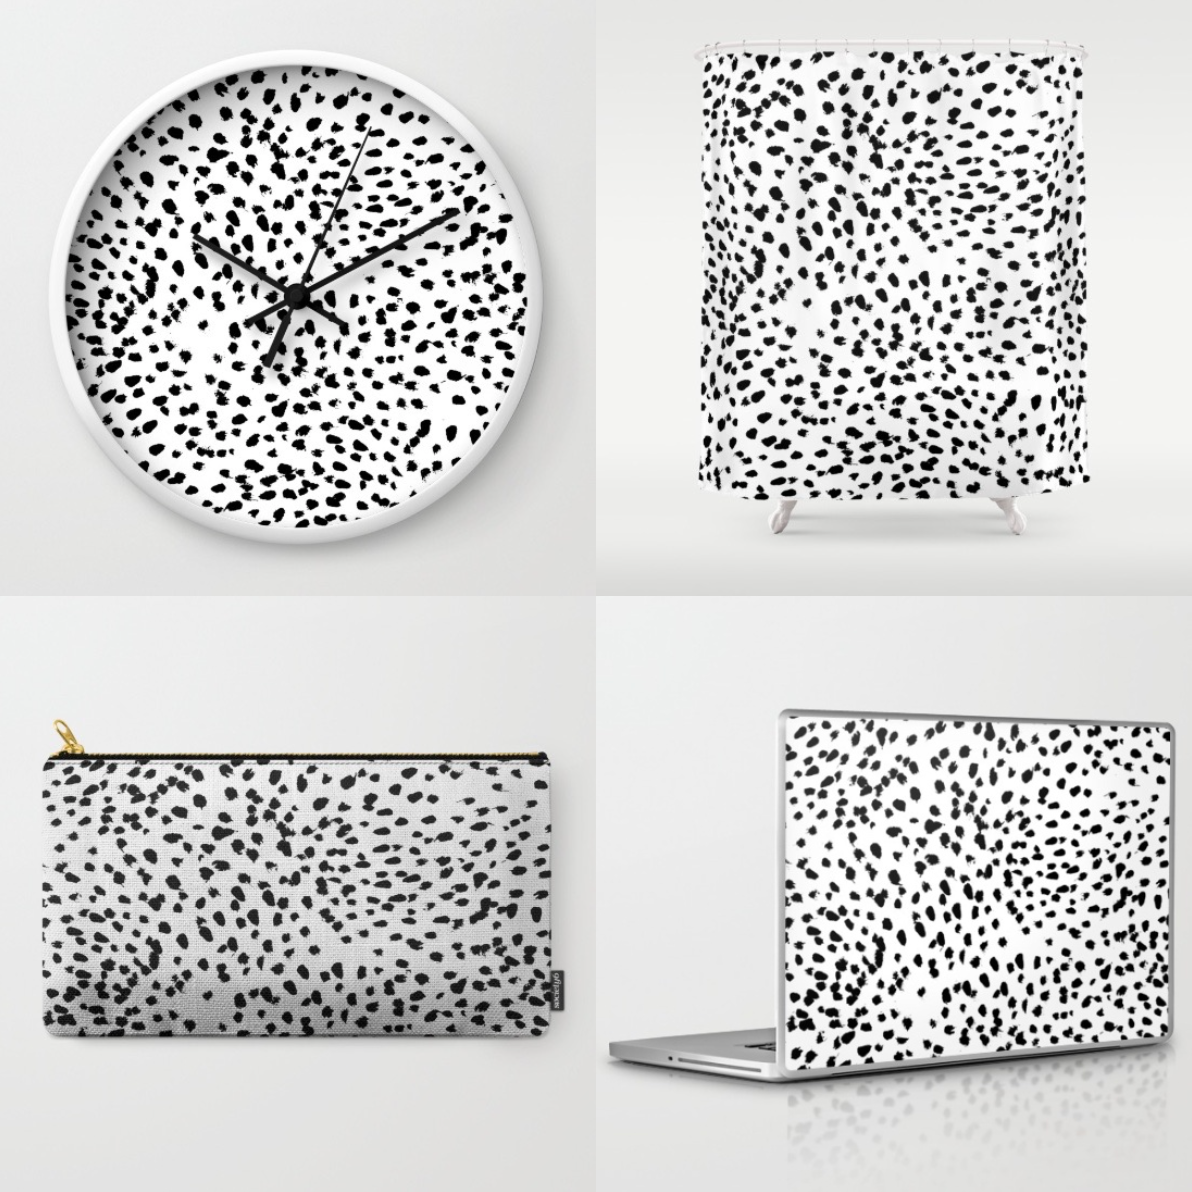 Dalmatian print obsession by Lauren Lindmark on Daily Dose of Charm